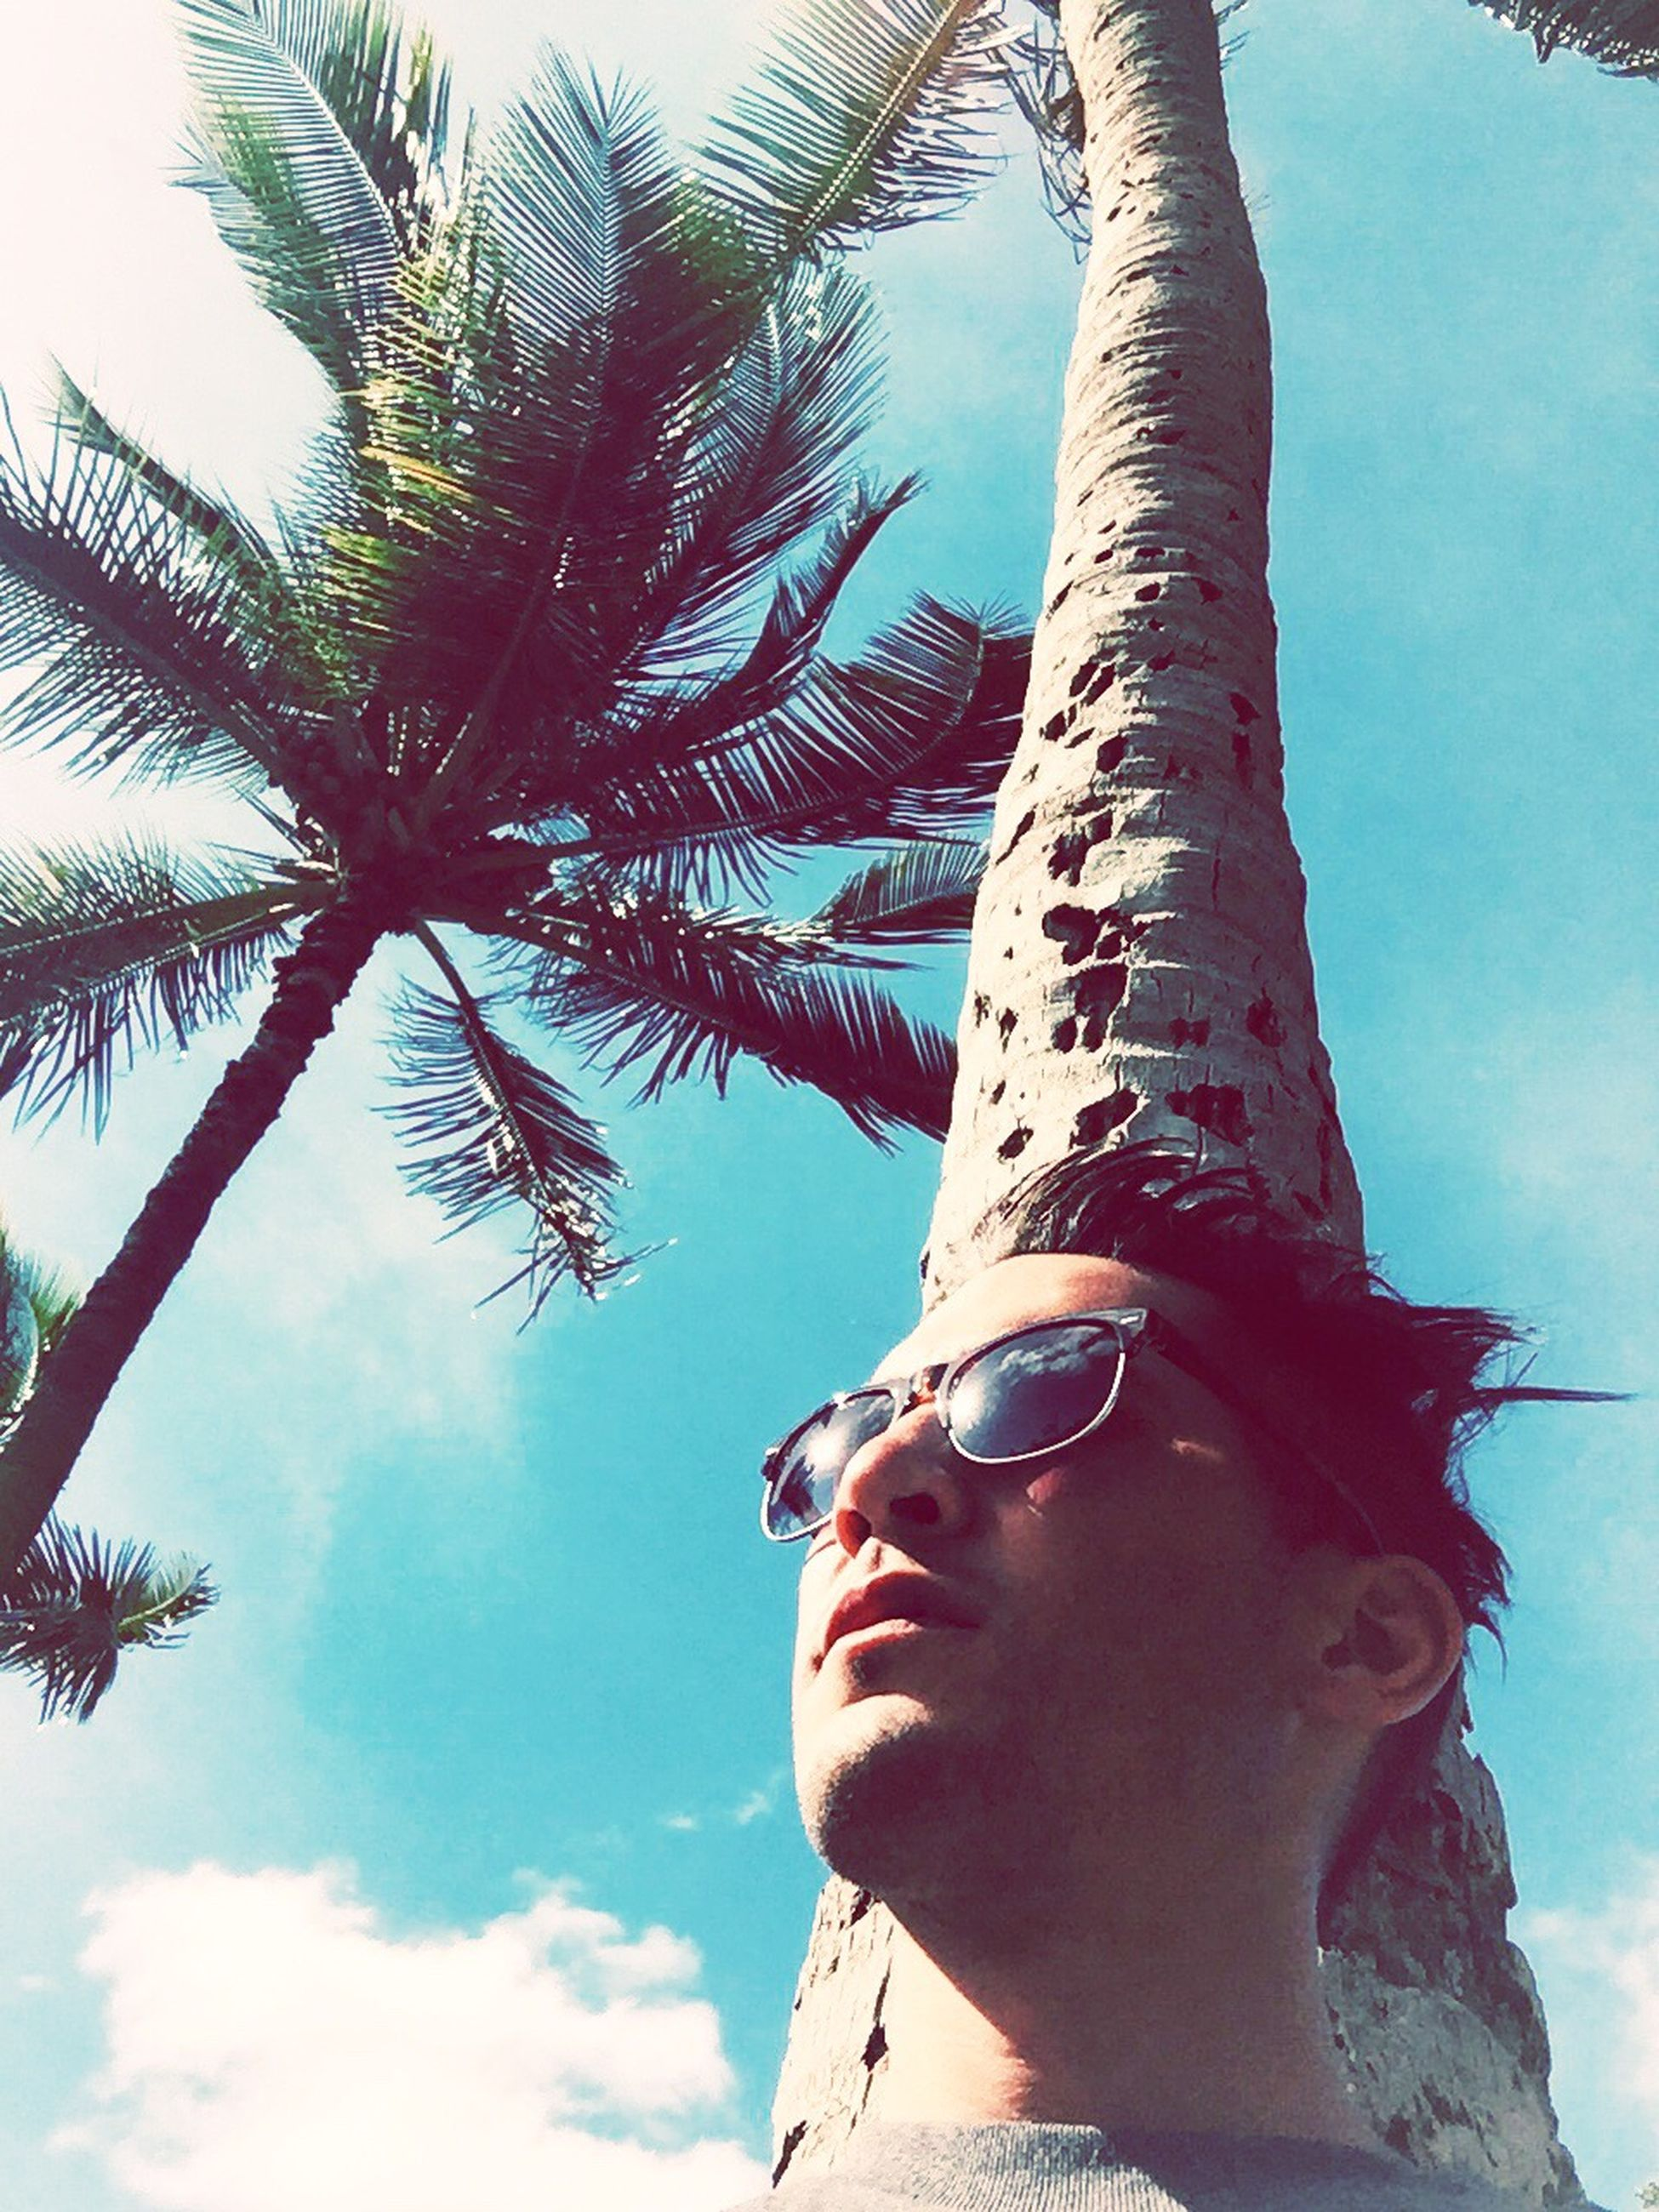 low angle view, tree, sky, sunlight, close-up, tree trunk, lifestyles, day, portrait, outdoors, leisure activity, looking at camera, headshot, blue, front view, sunglasses, part of, palm tree